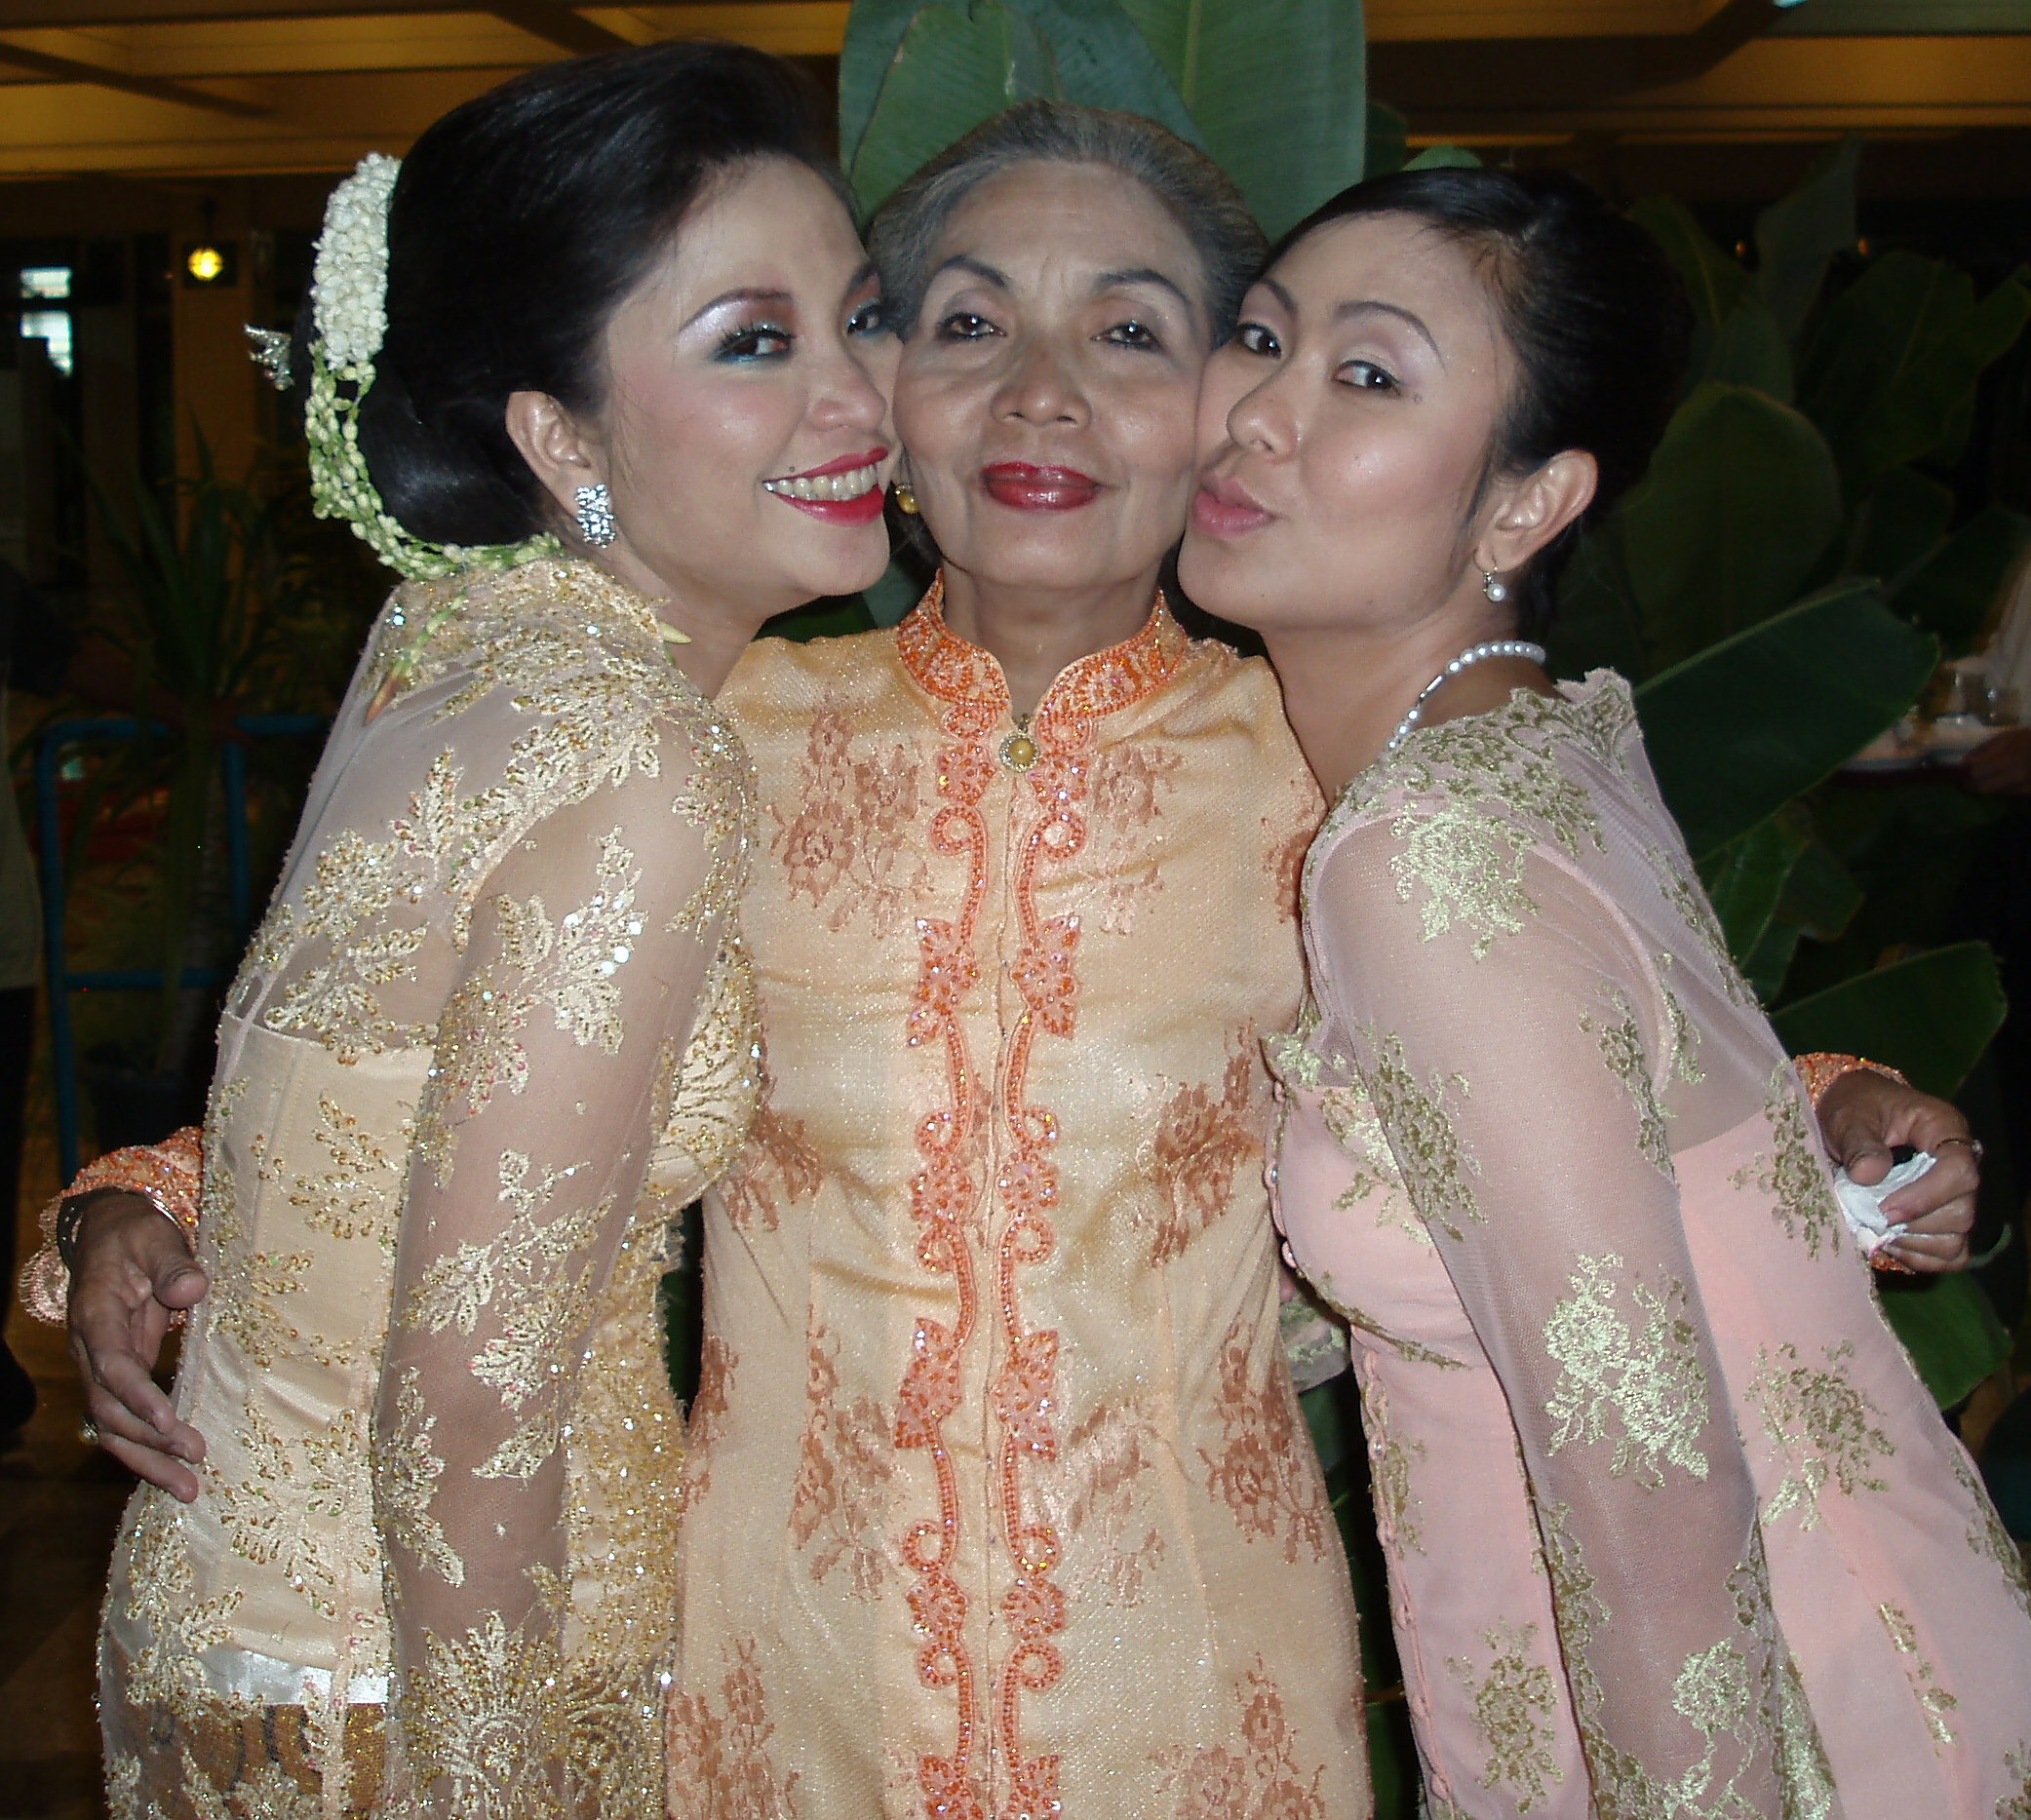 chika the bride, mom, and me